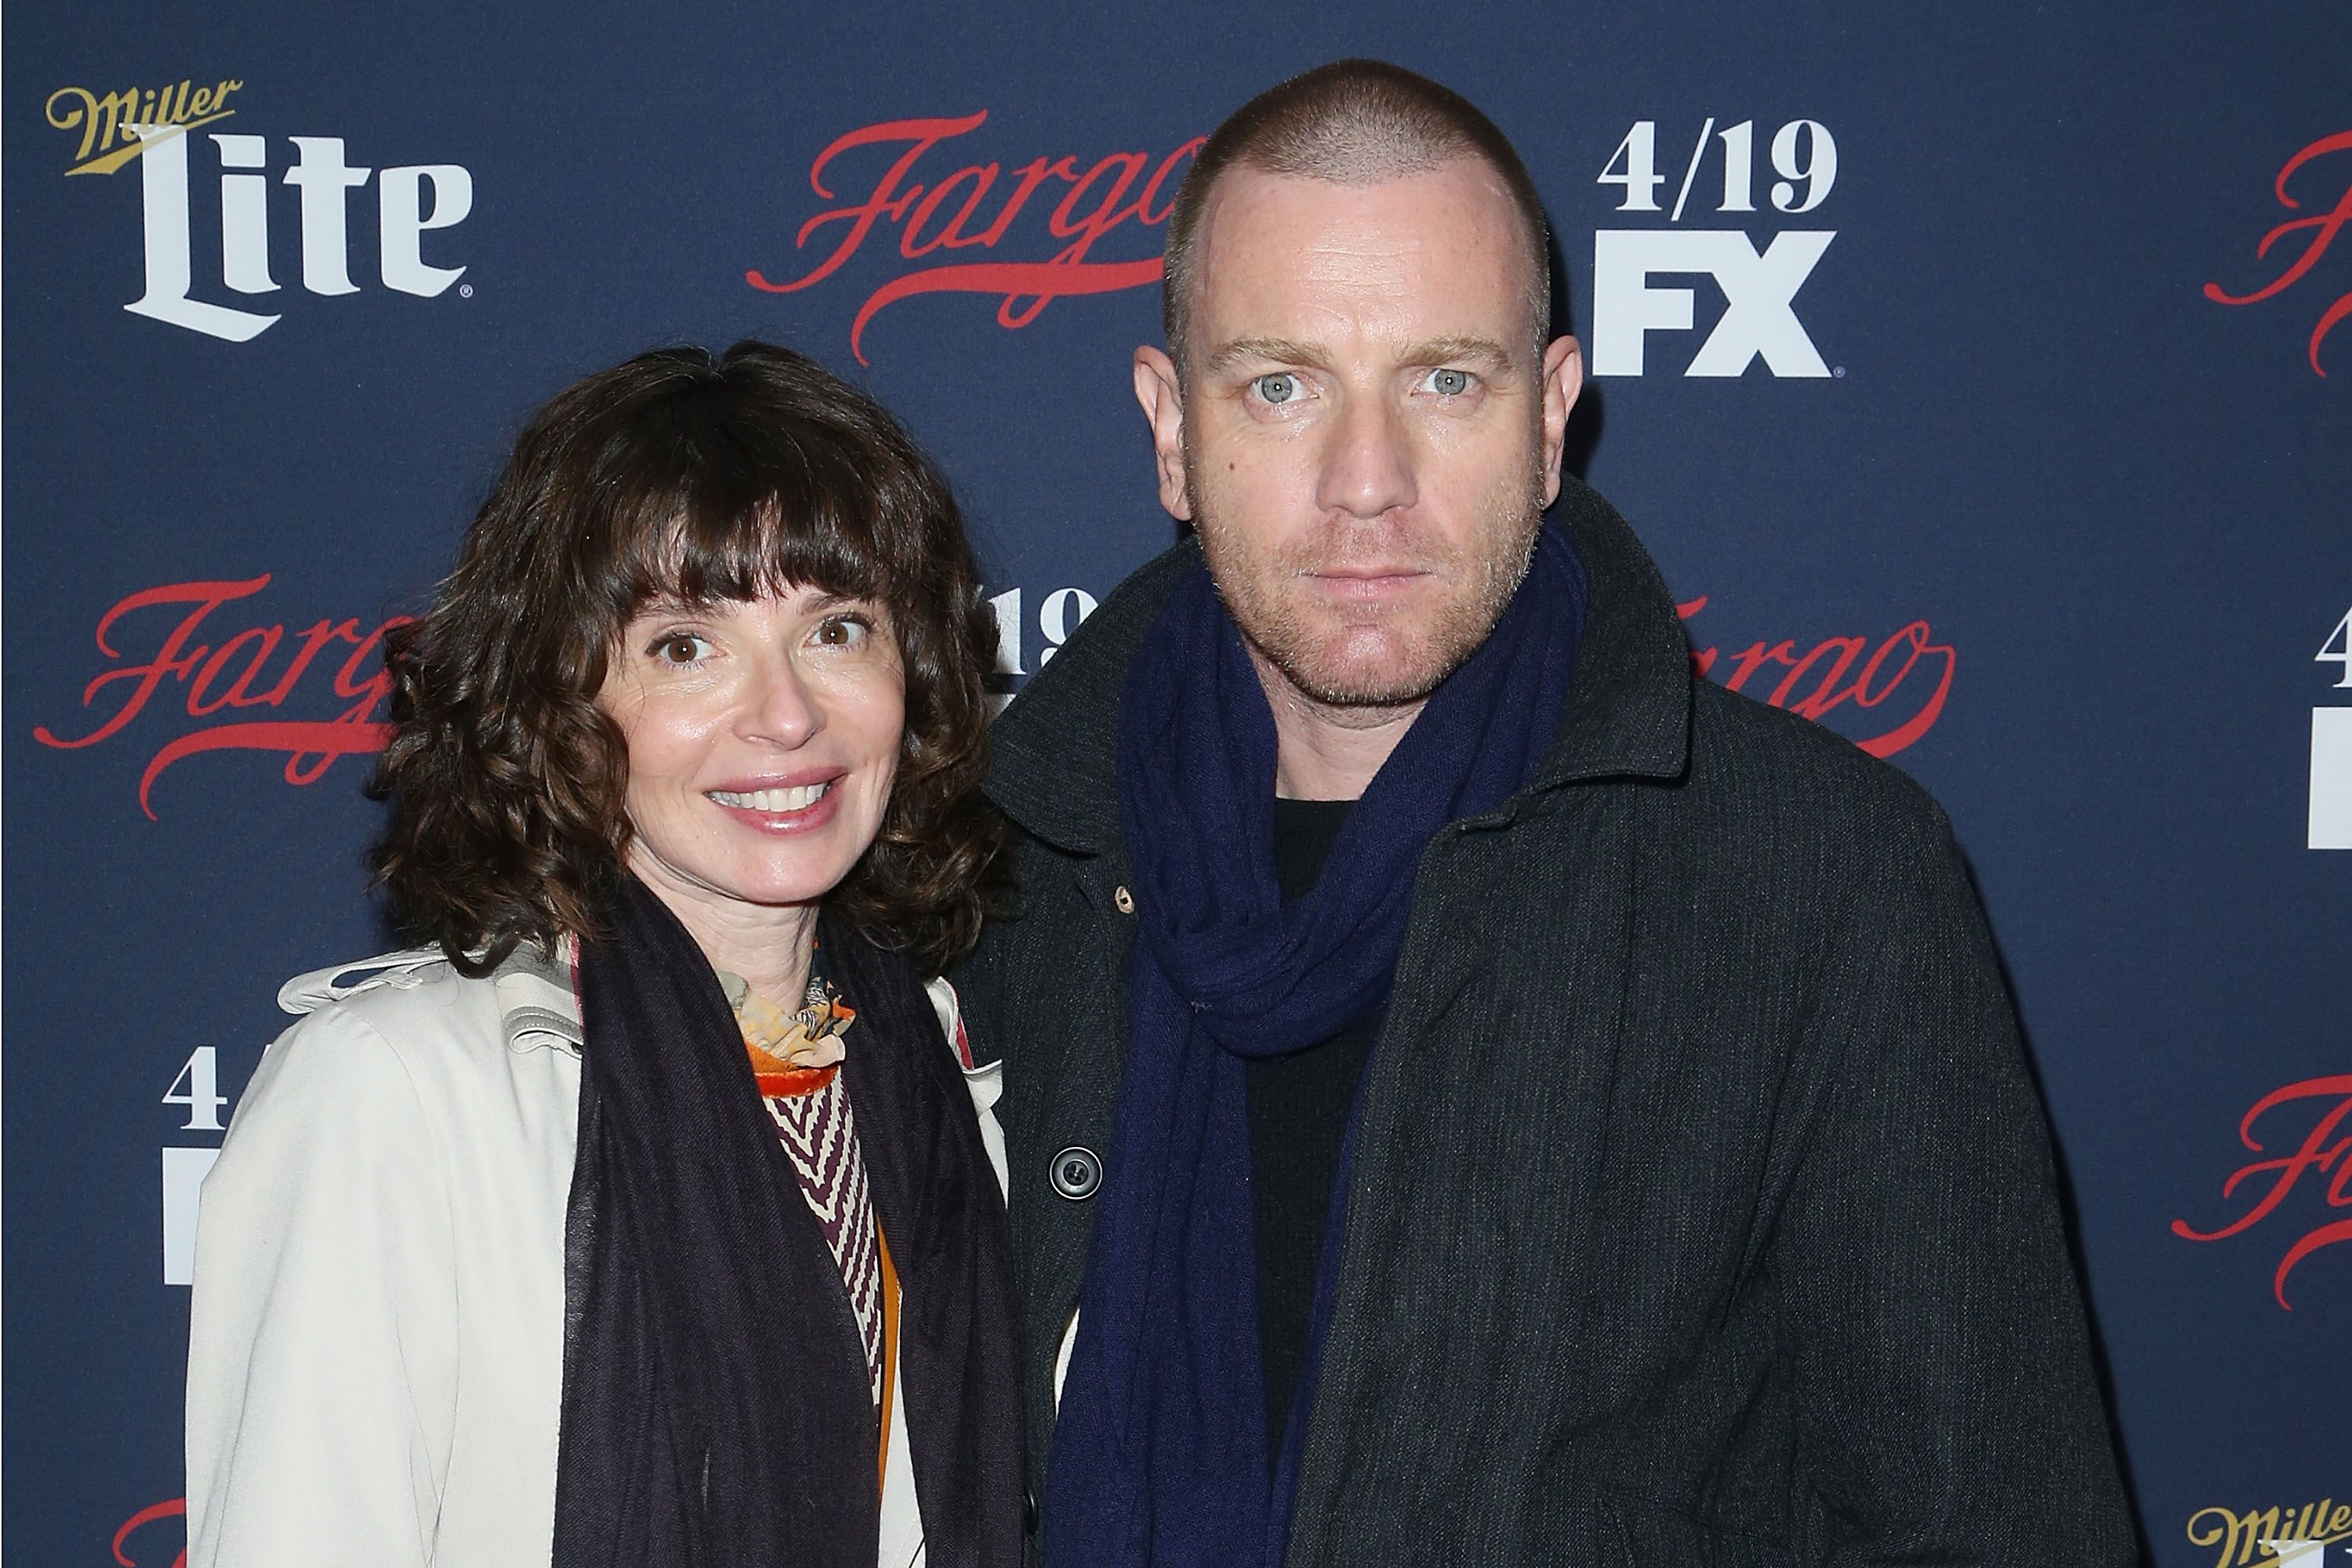 Eve Mavrakis and Ewan McGregor at the SVA Theater in 2017 in New York City | Source: Getty Images